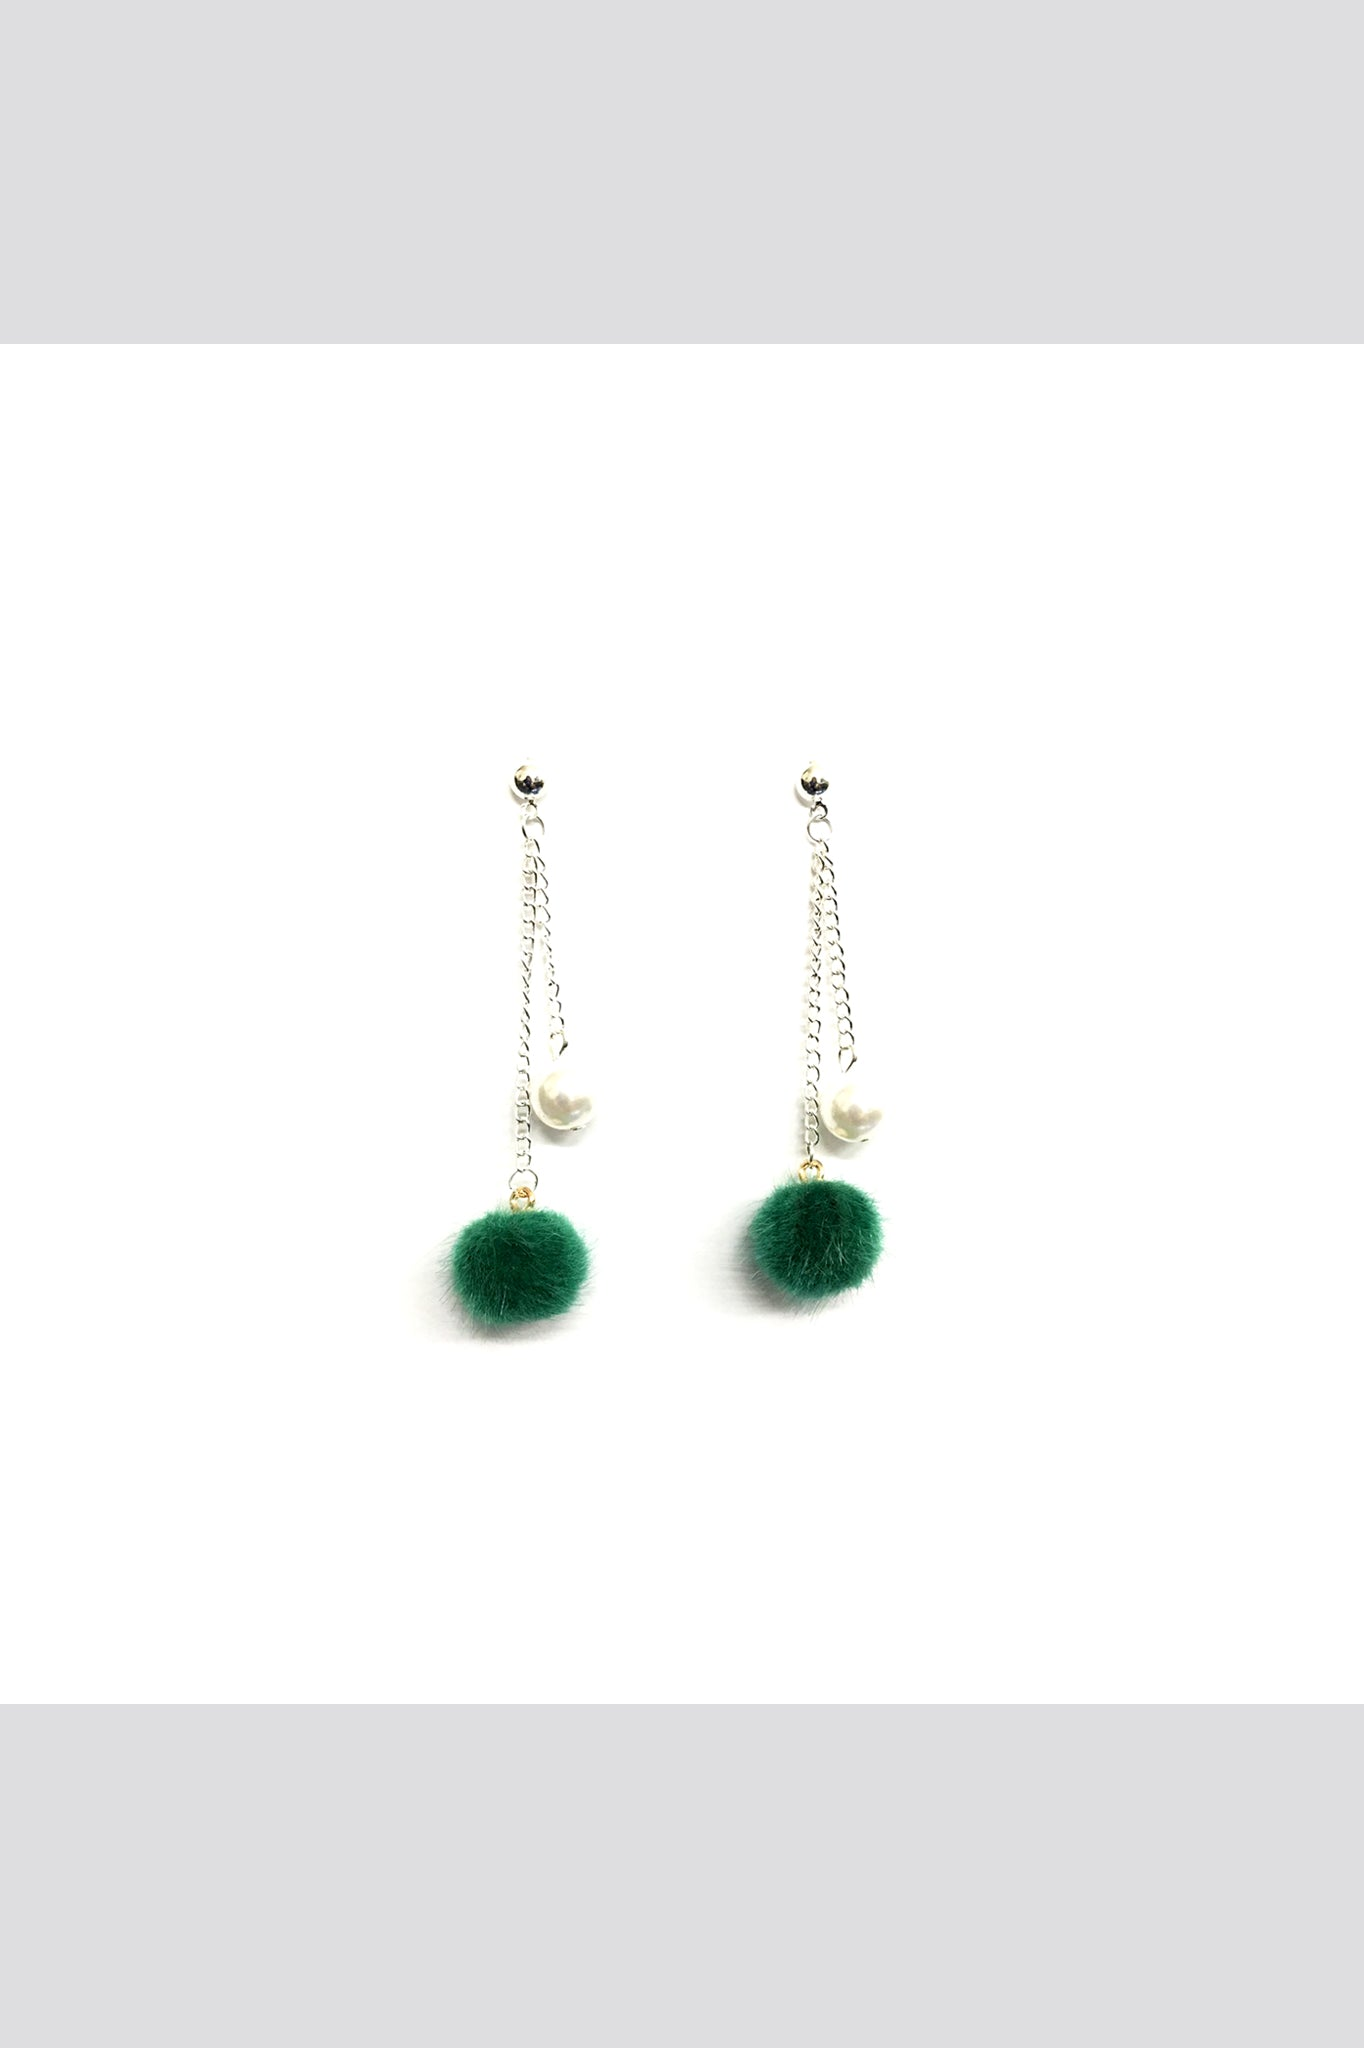 Earring-Design-46